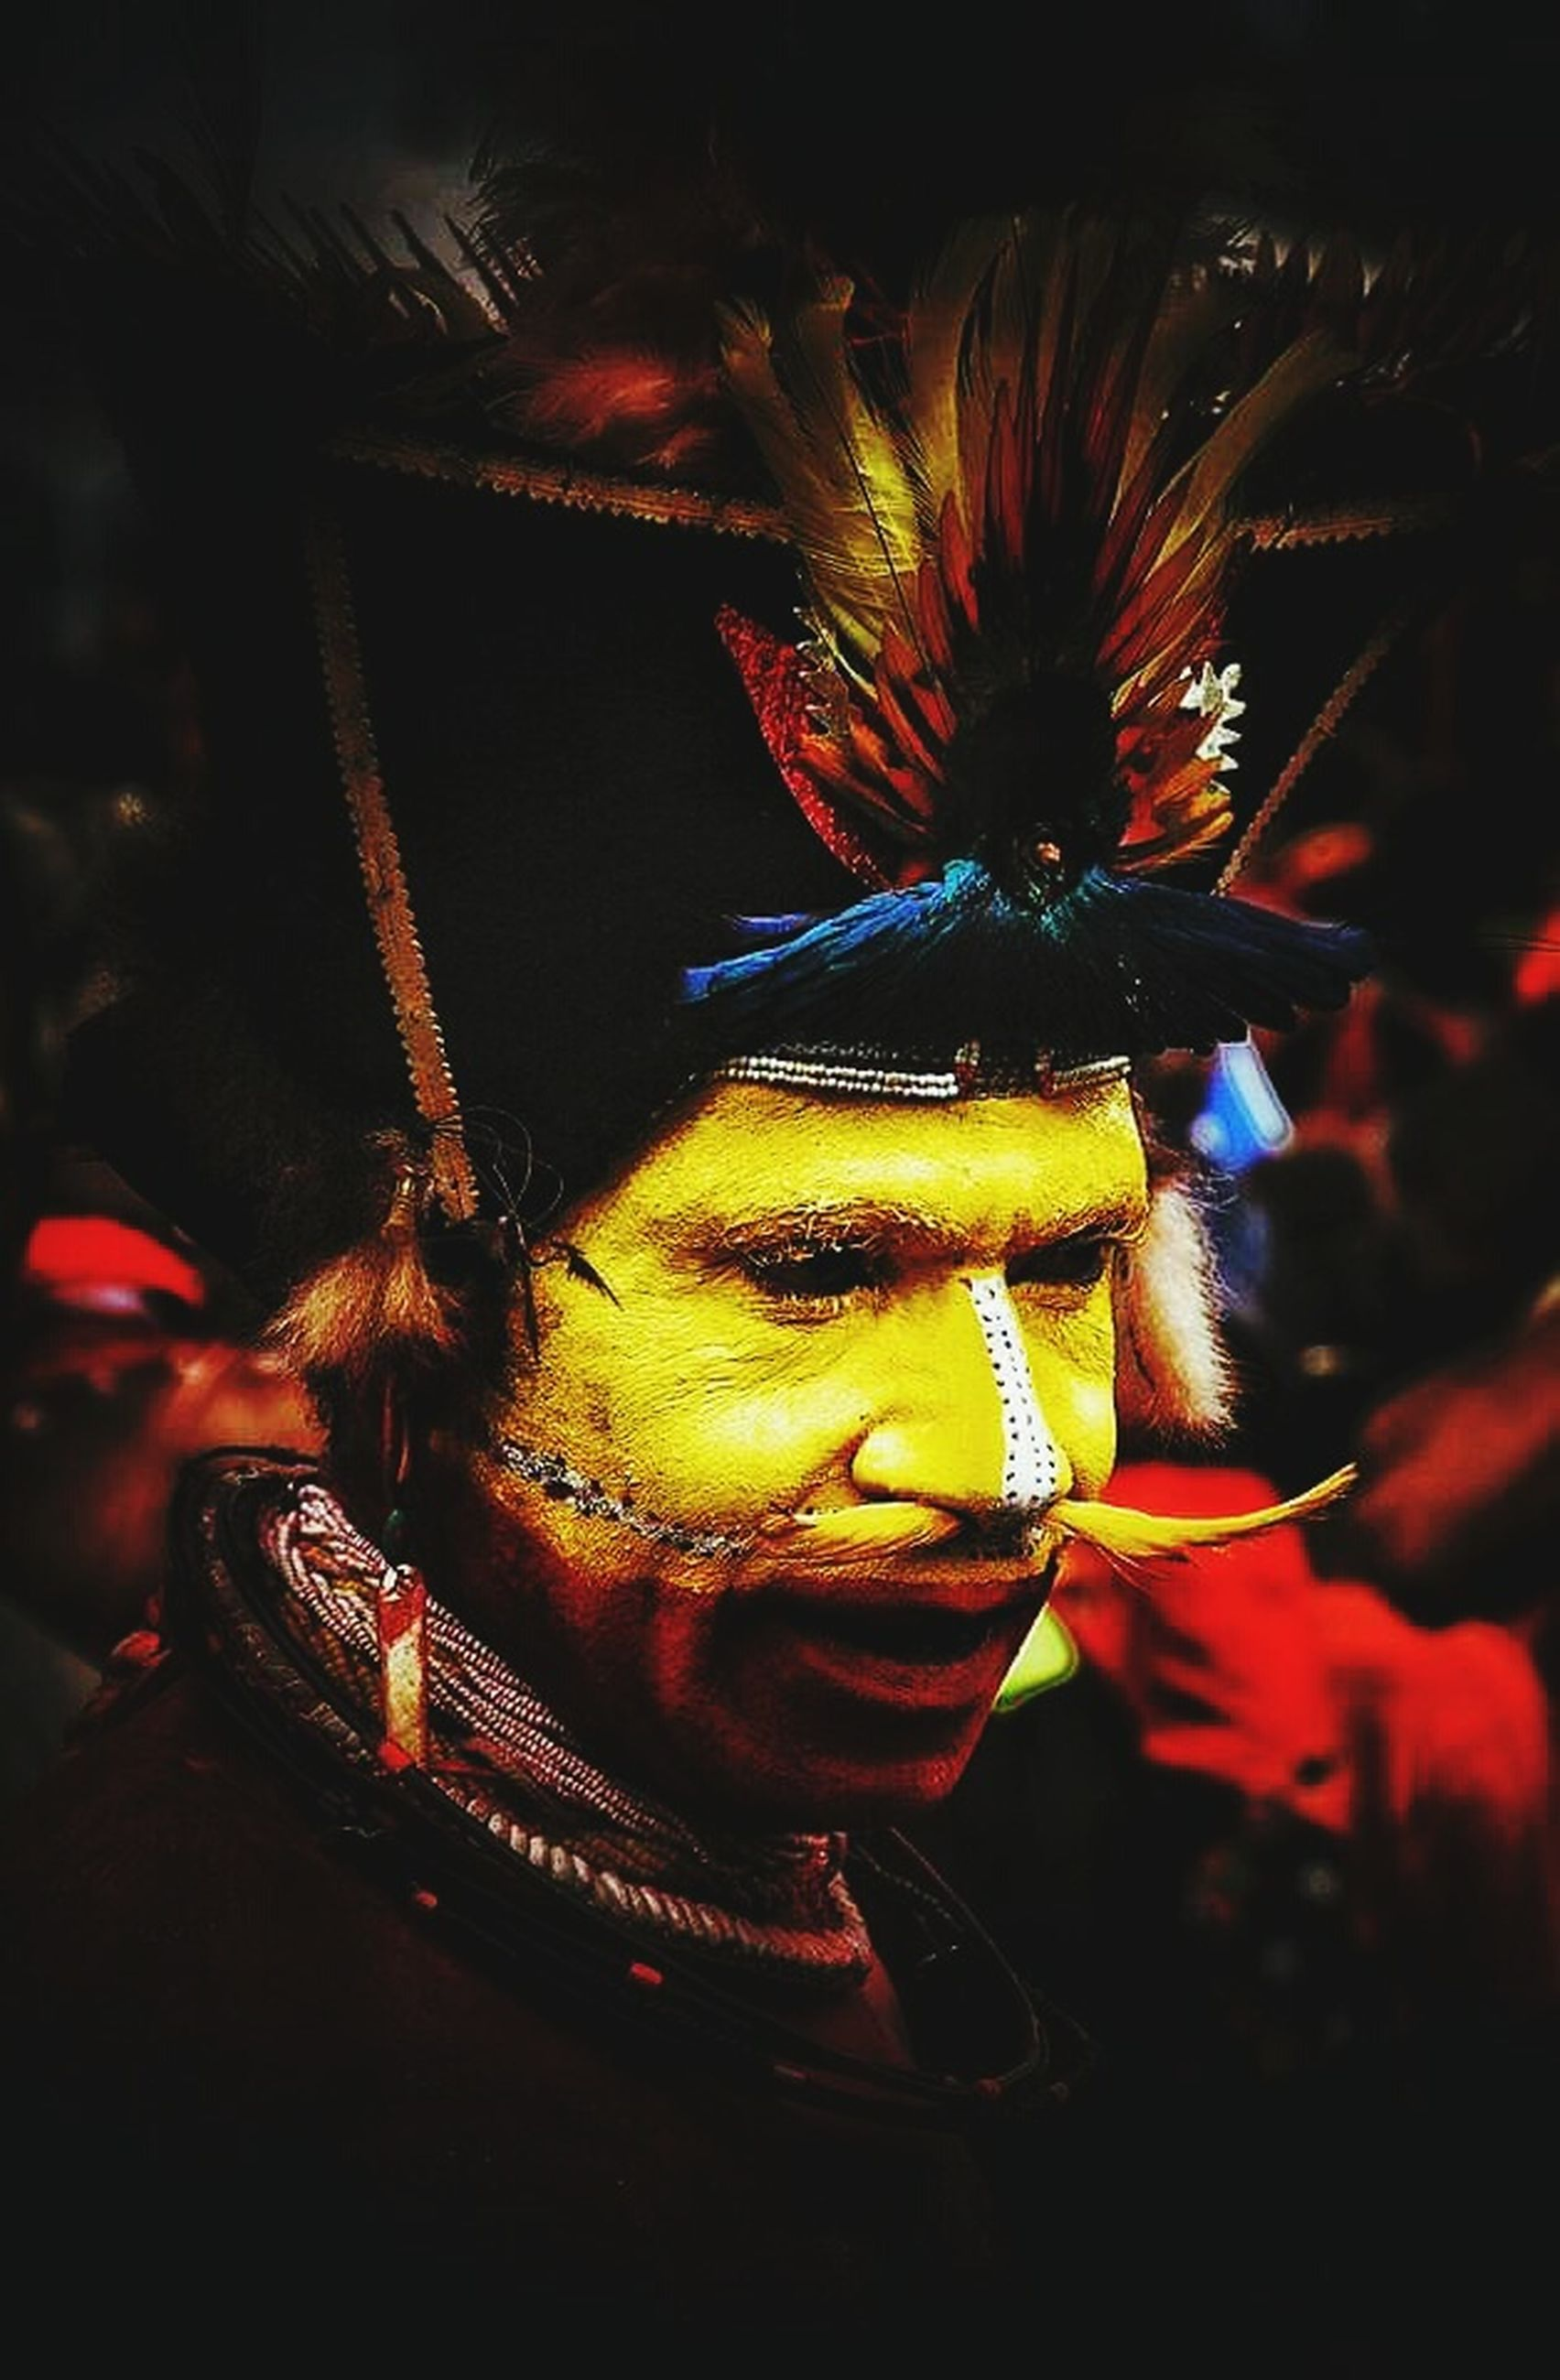 art and craft, close-up, creativity, carnival, representation, indoors, feather, celebration, selective focus, decoration, multi colored, focus on foreground, one person, headwear, event, human representation, arts culture and entertainment, real people, carnival - celebration event, festival, ornate